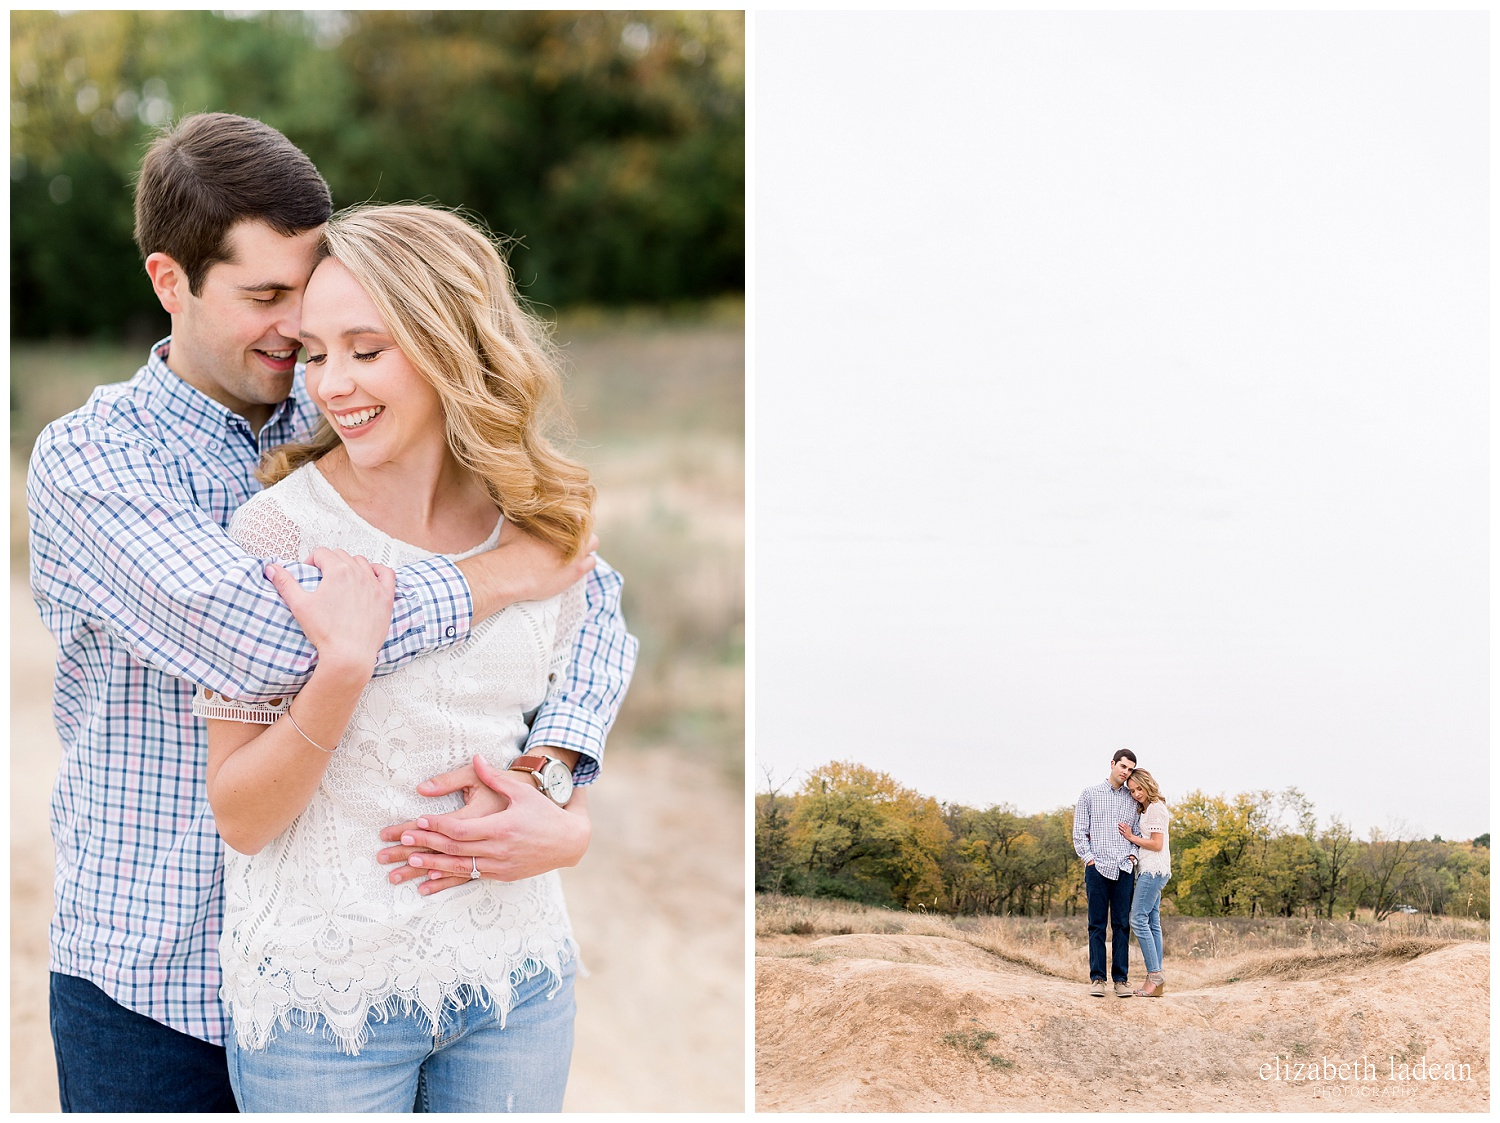 Colorful-Fall-Engagement-Photos-in-KC-C+B-2018-elizabeth-ladean-photography-photo_1787.jpg